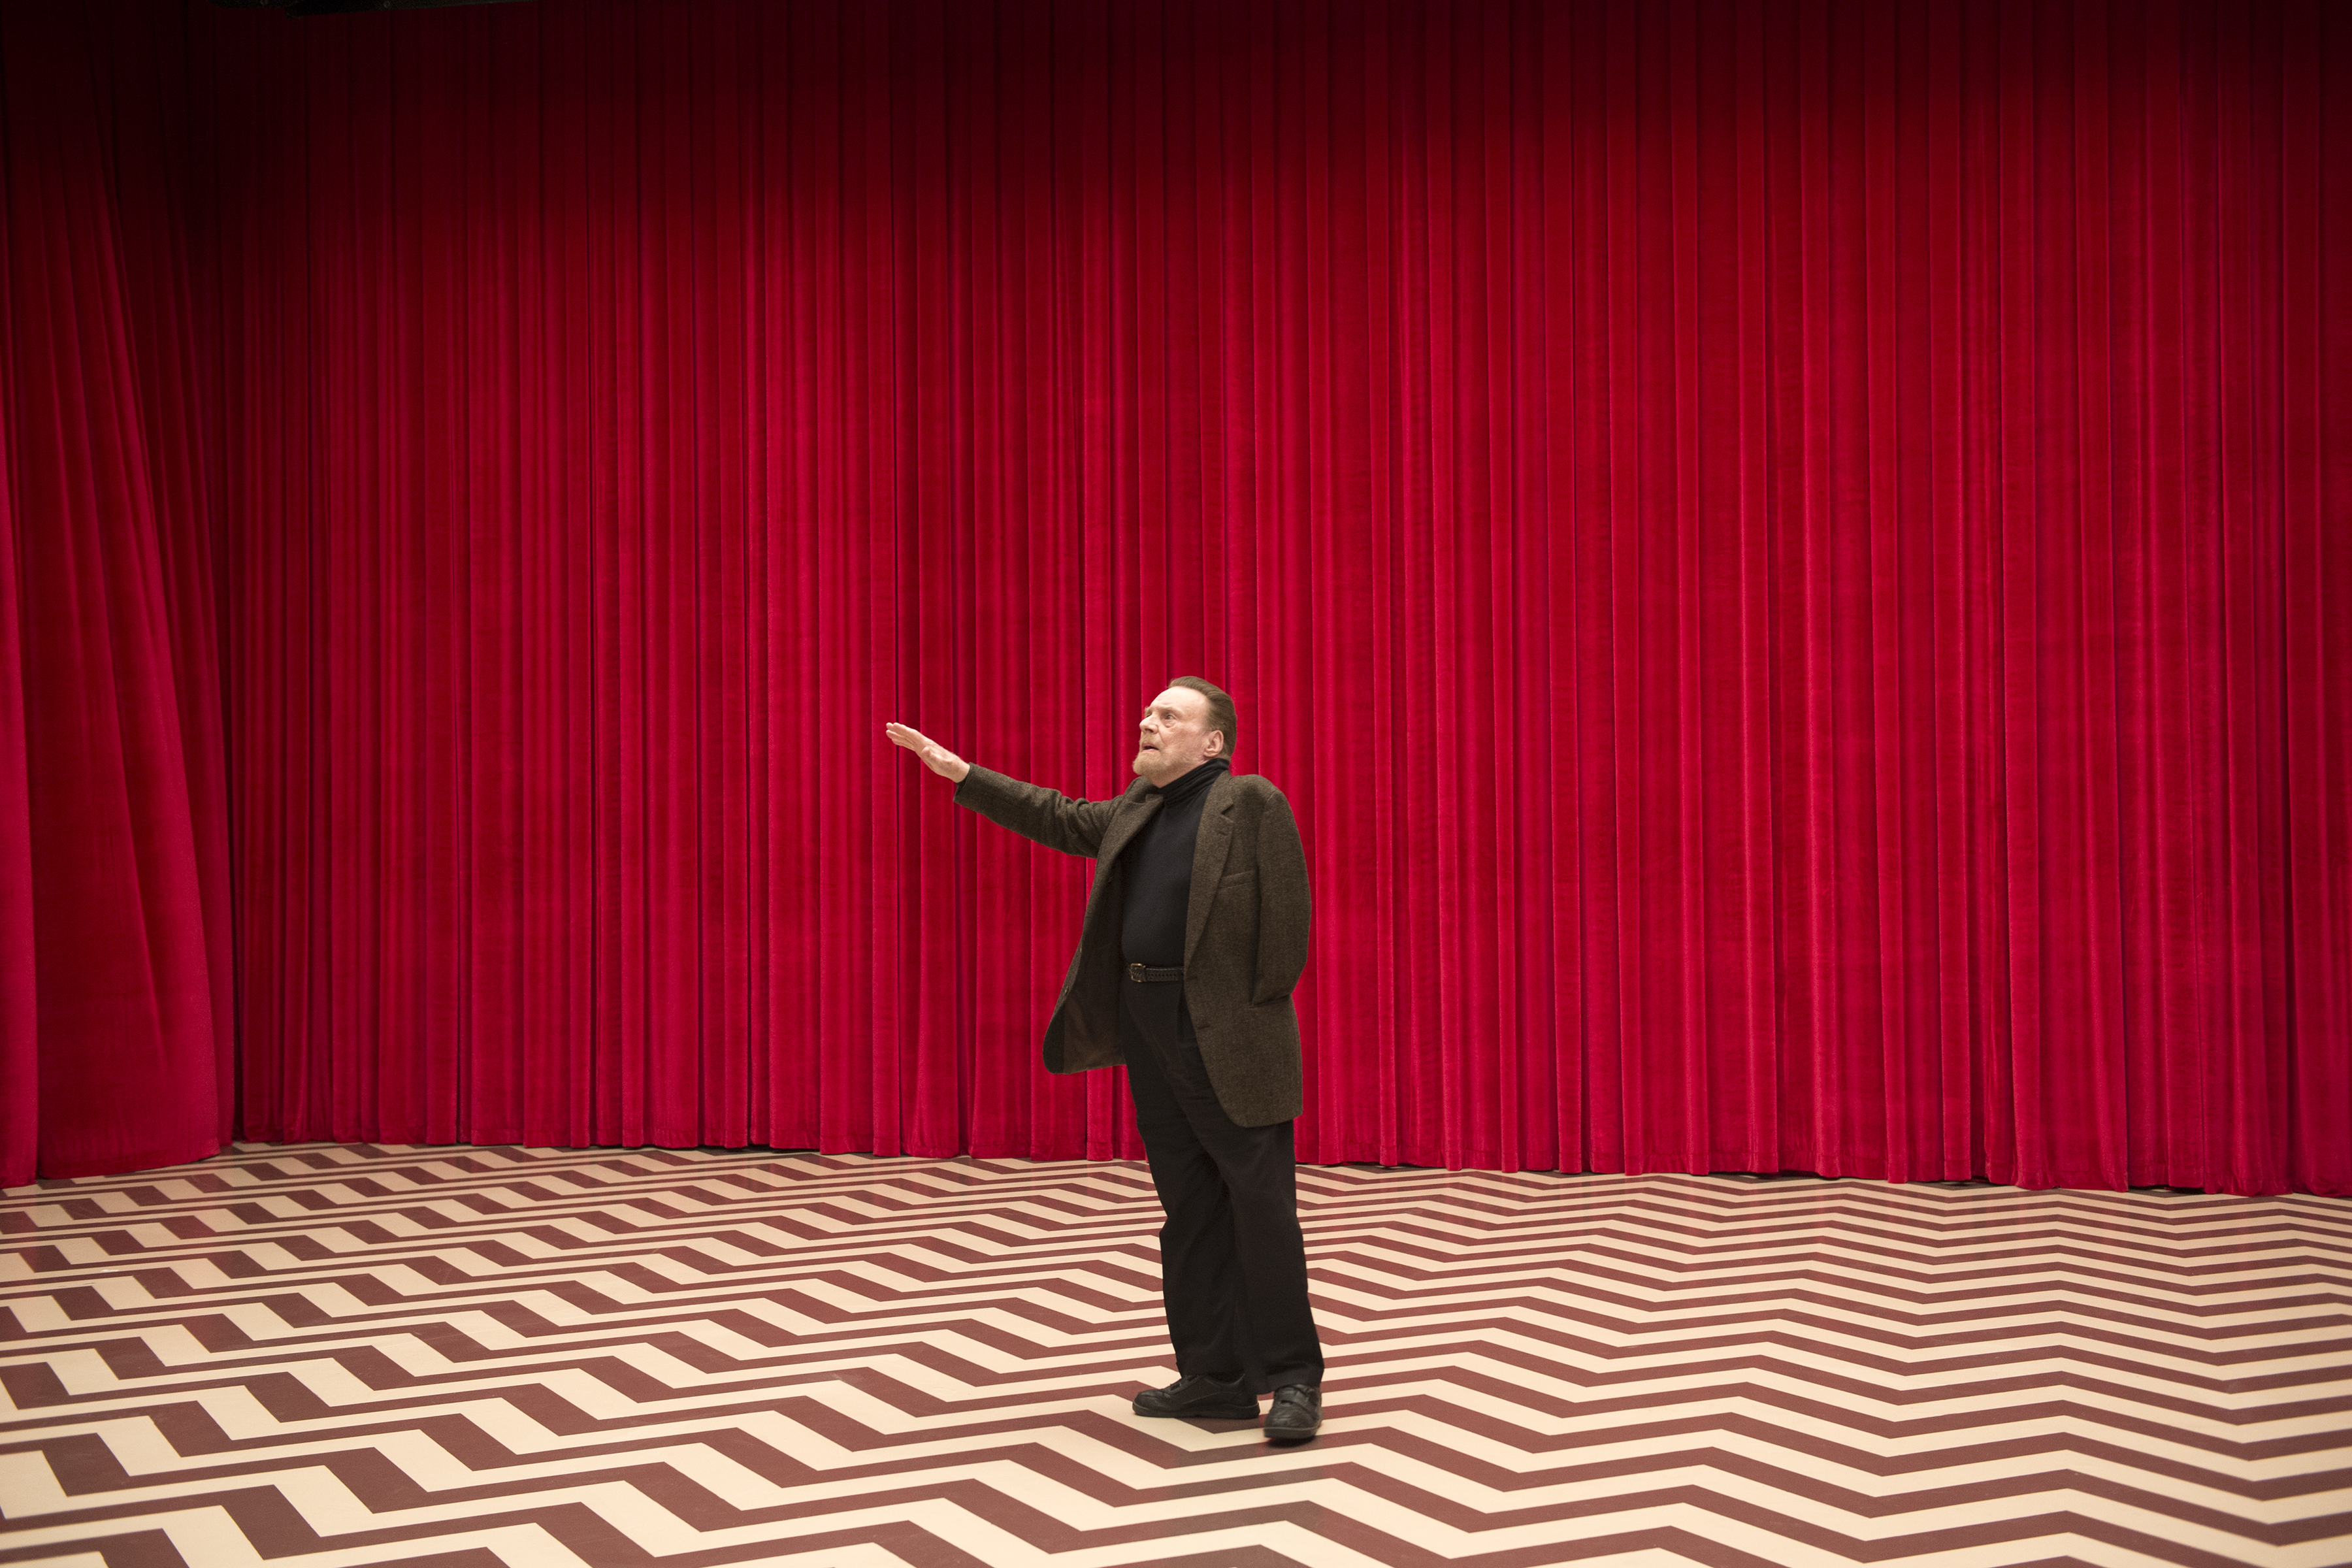 rr 21355 r Recapping Twin Peaks: The Return: Part 6